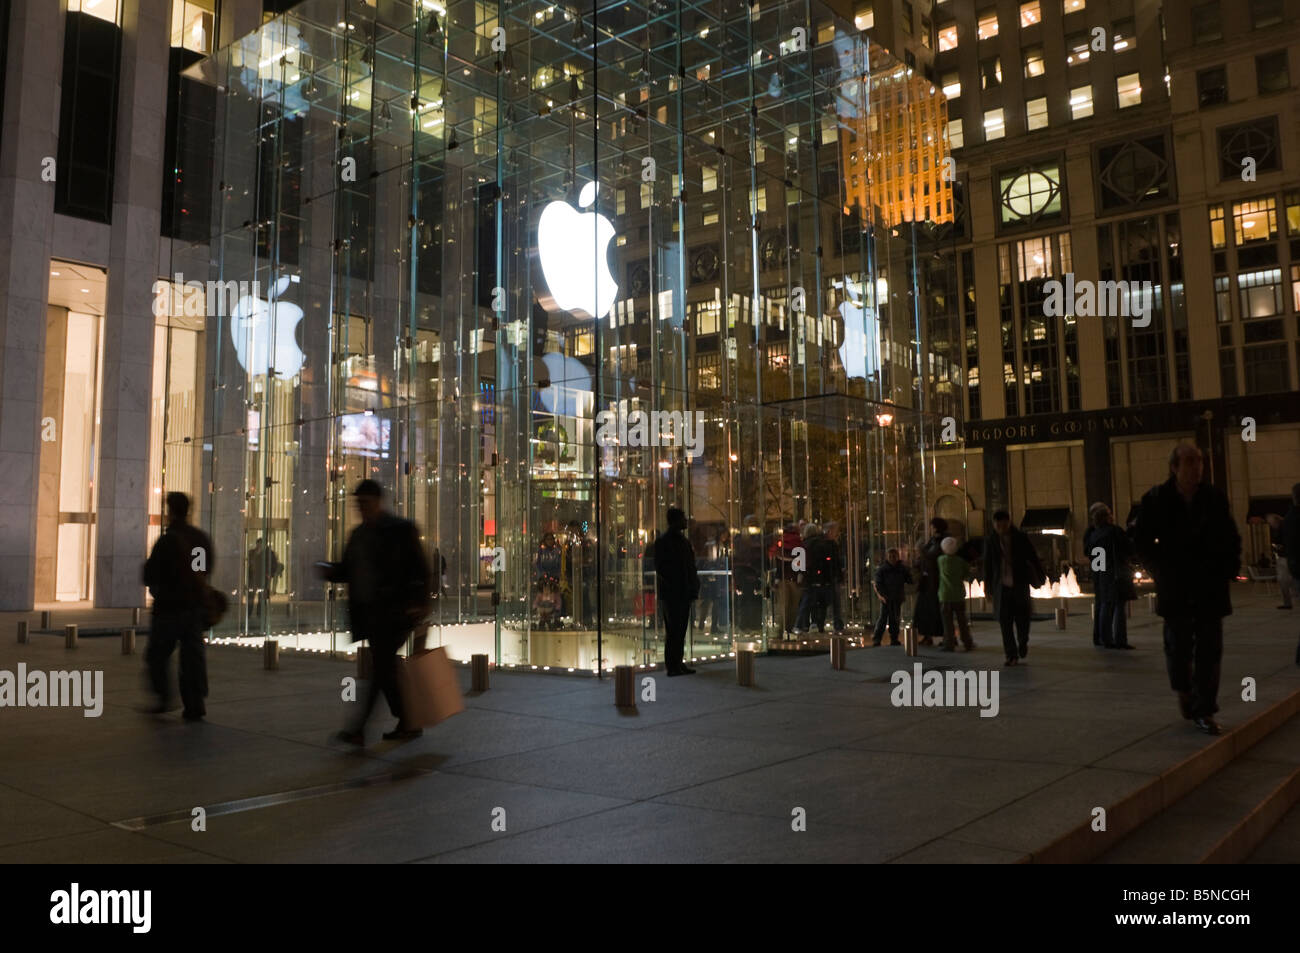 The Apple Store Stock Photos & The Apple Store Stock Images - Alamy